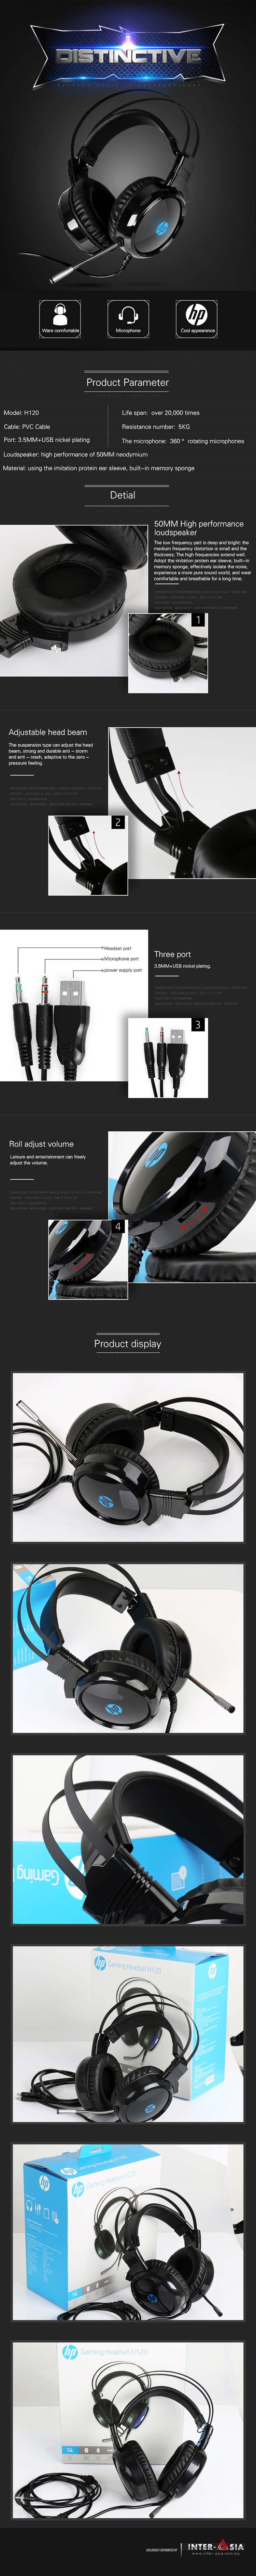 hp h120 high performance gaming headset